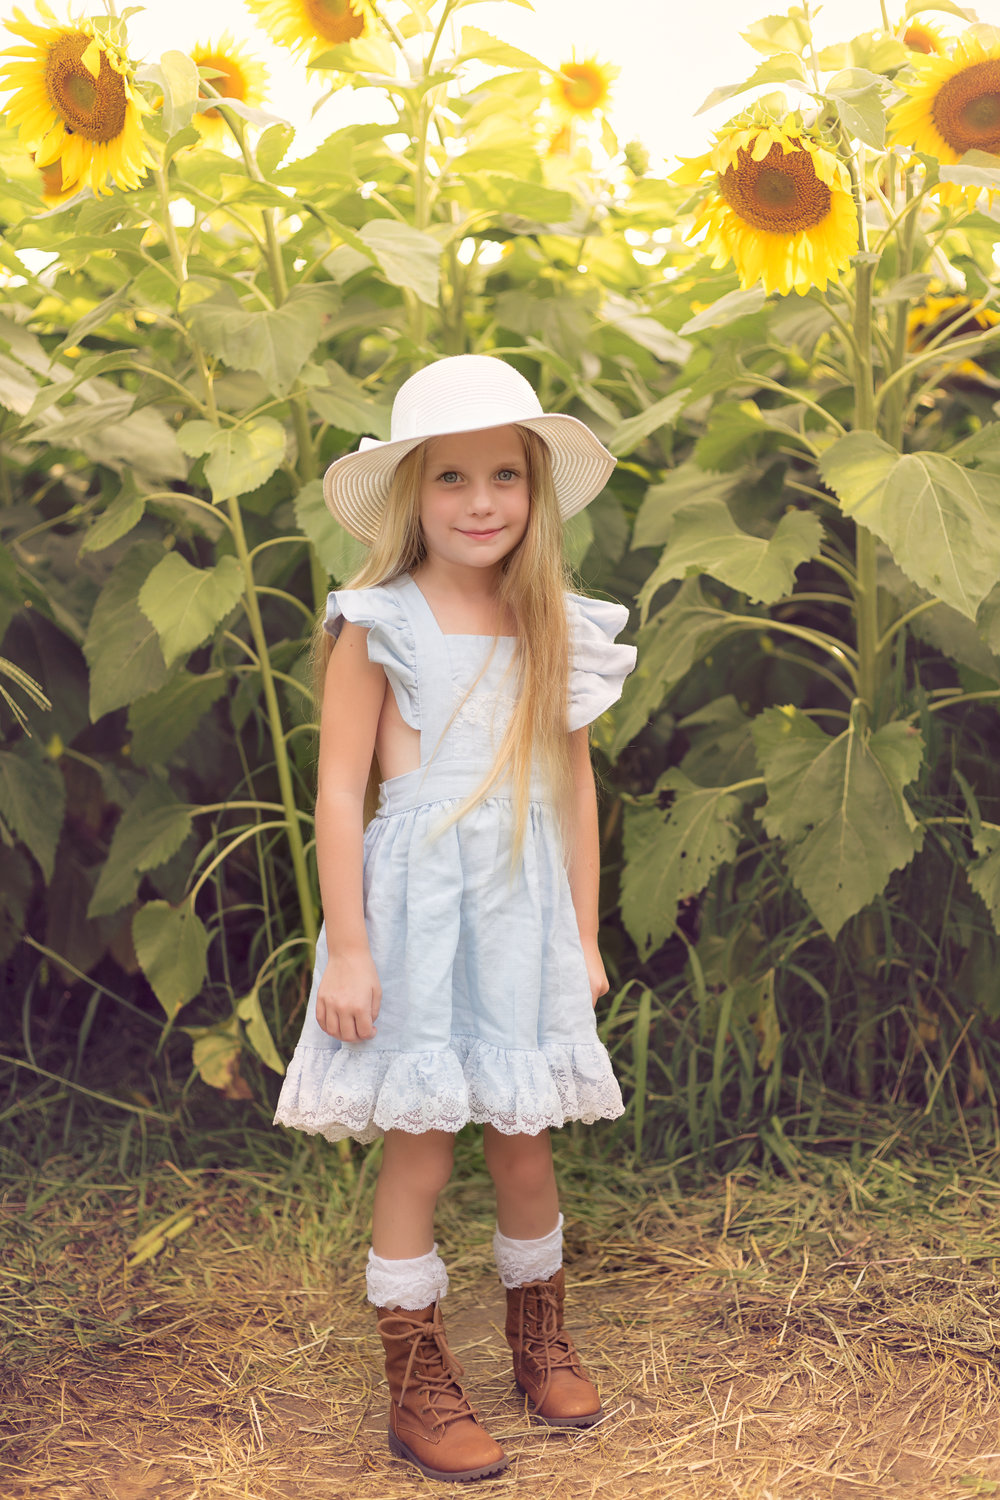 This little girls outfit was perfect for the Sunflower field!